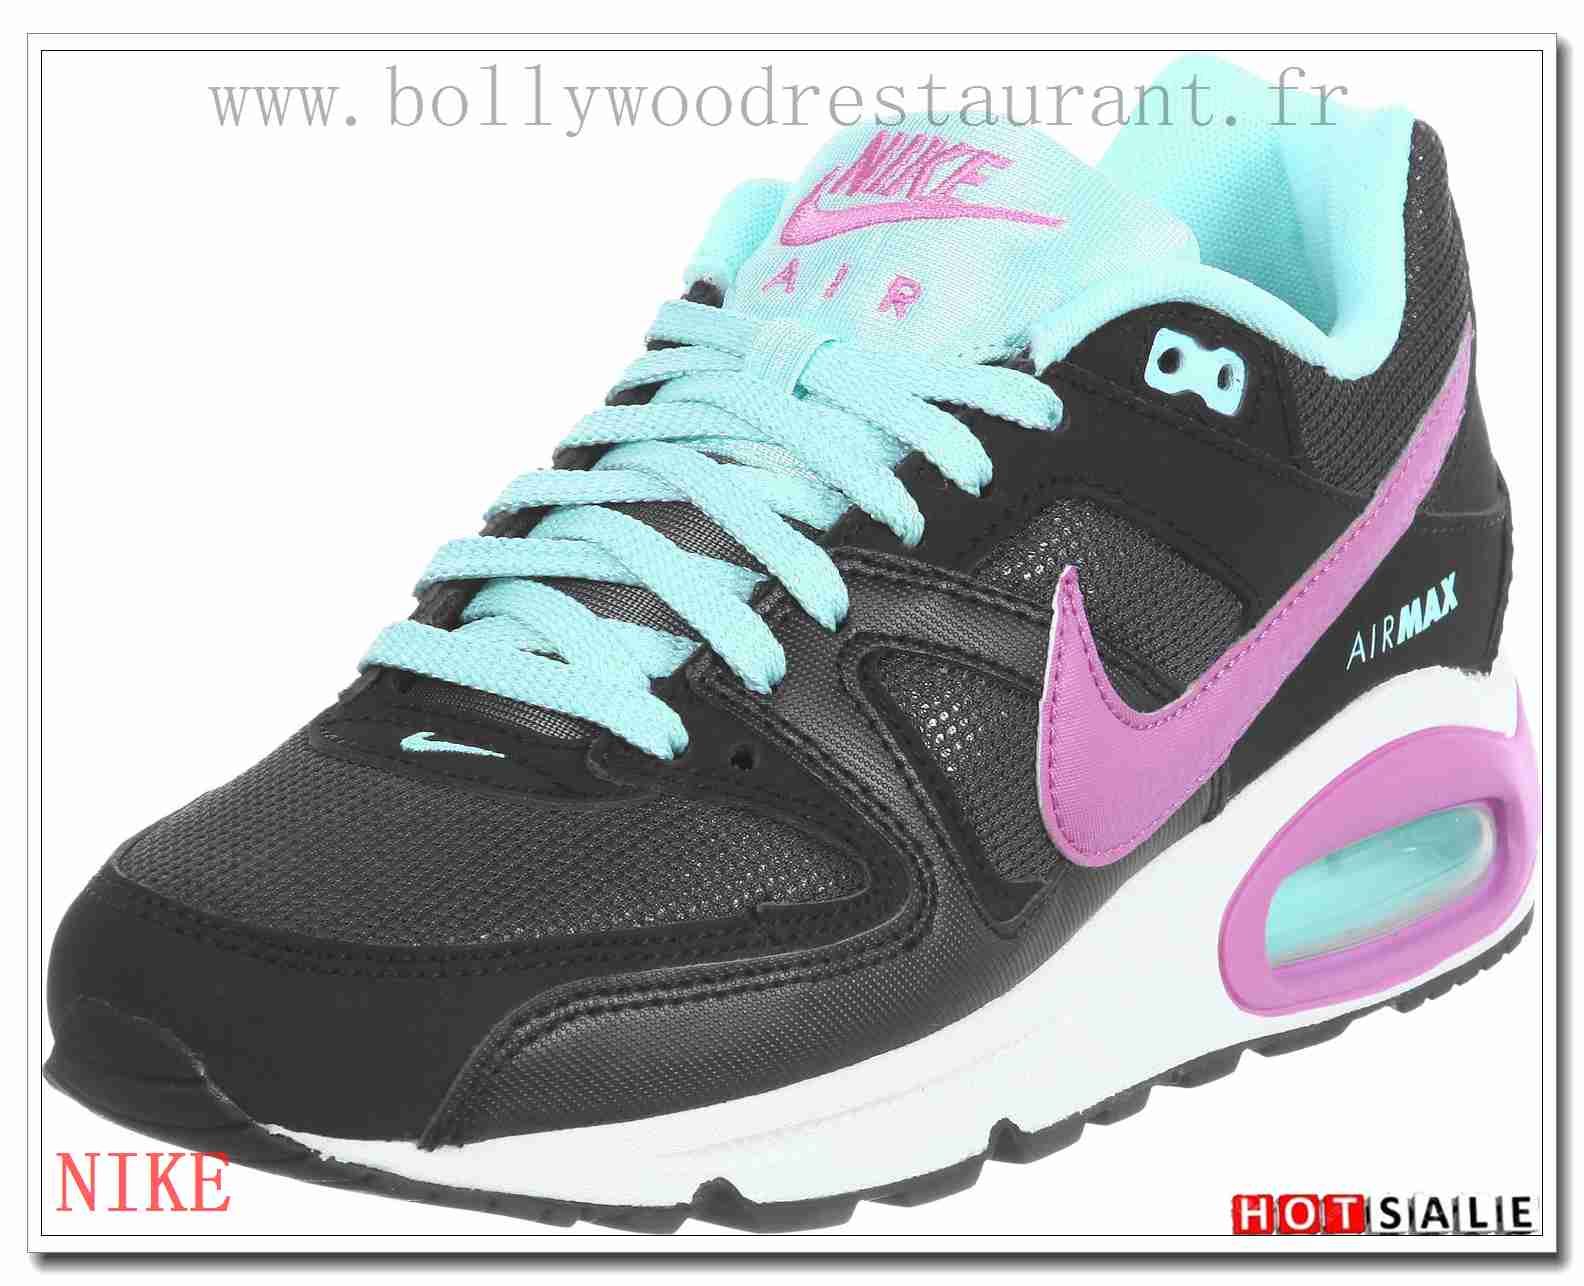 buy popular bc99f 22392 RP0895 Affaires 2018 Nouveau style Nike Air Max Command - Femme Chaussures  - Promotions Vente -